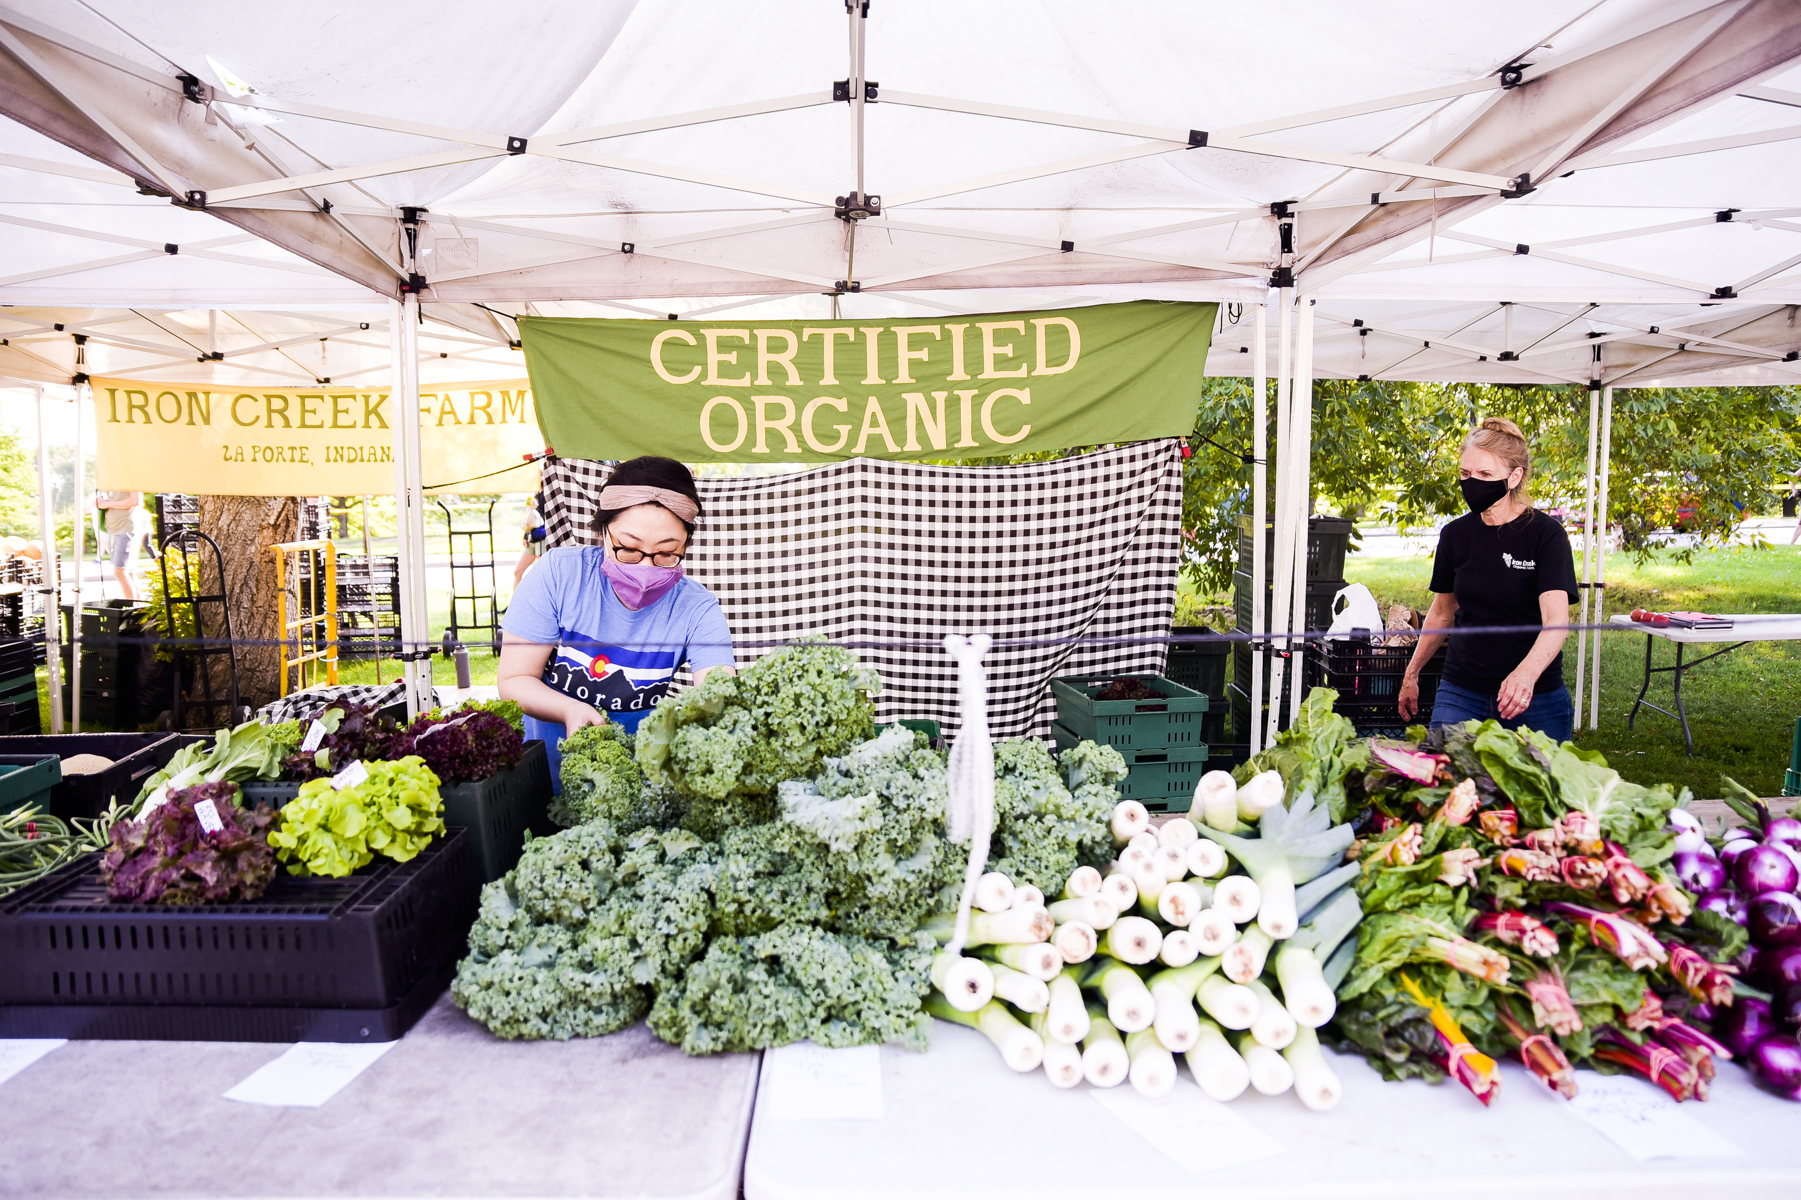 A table of fresh veggies under a tent with a person tending to them.